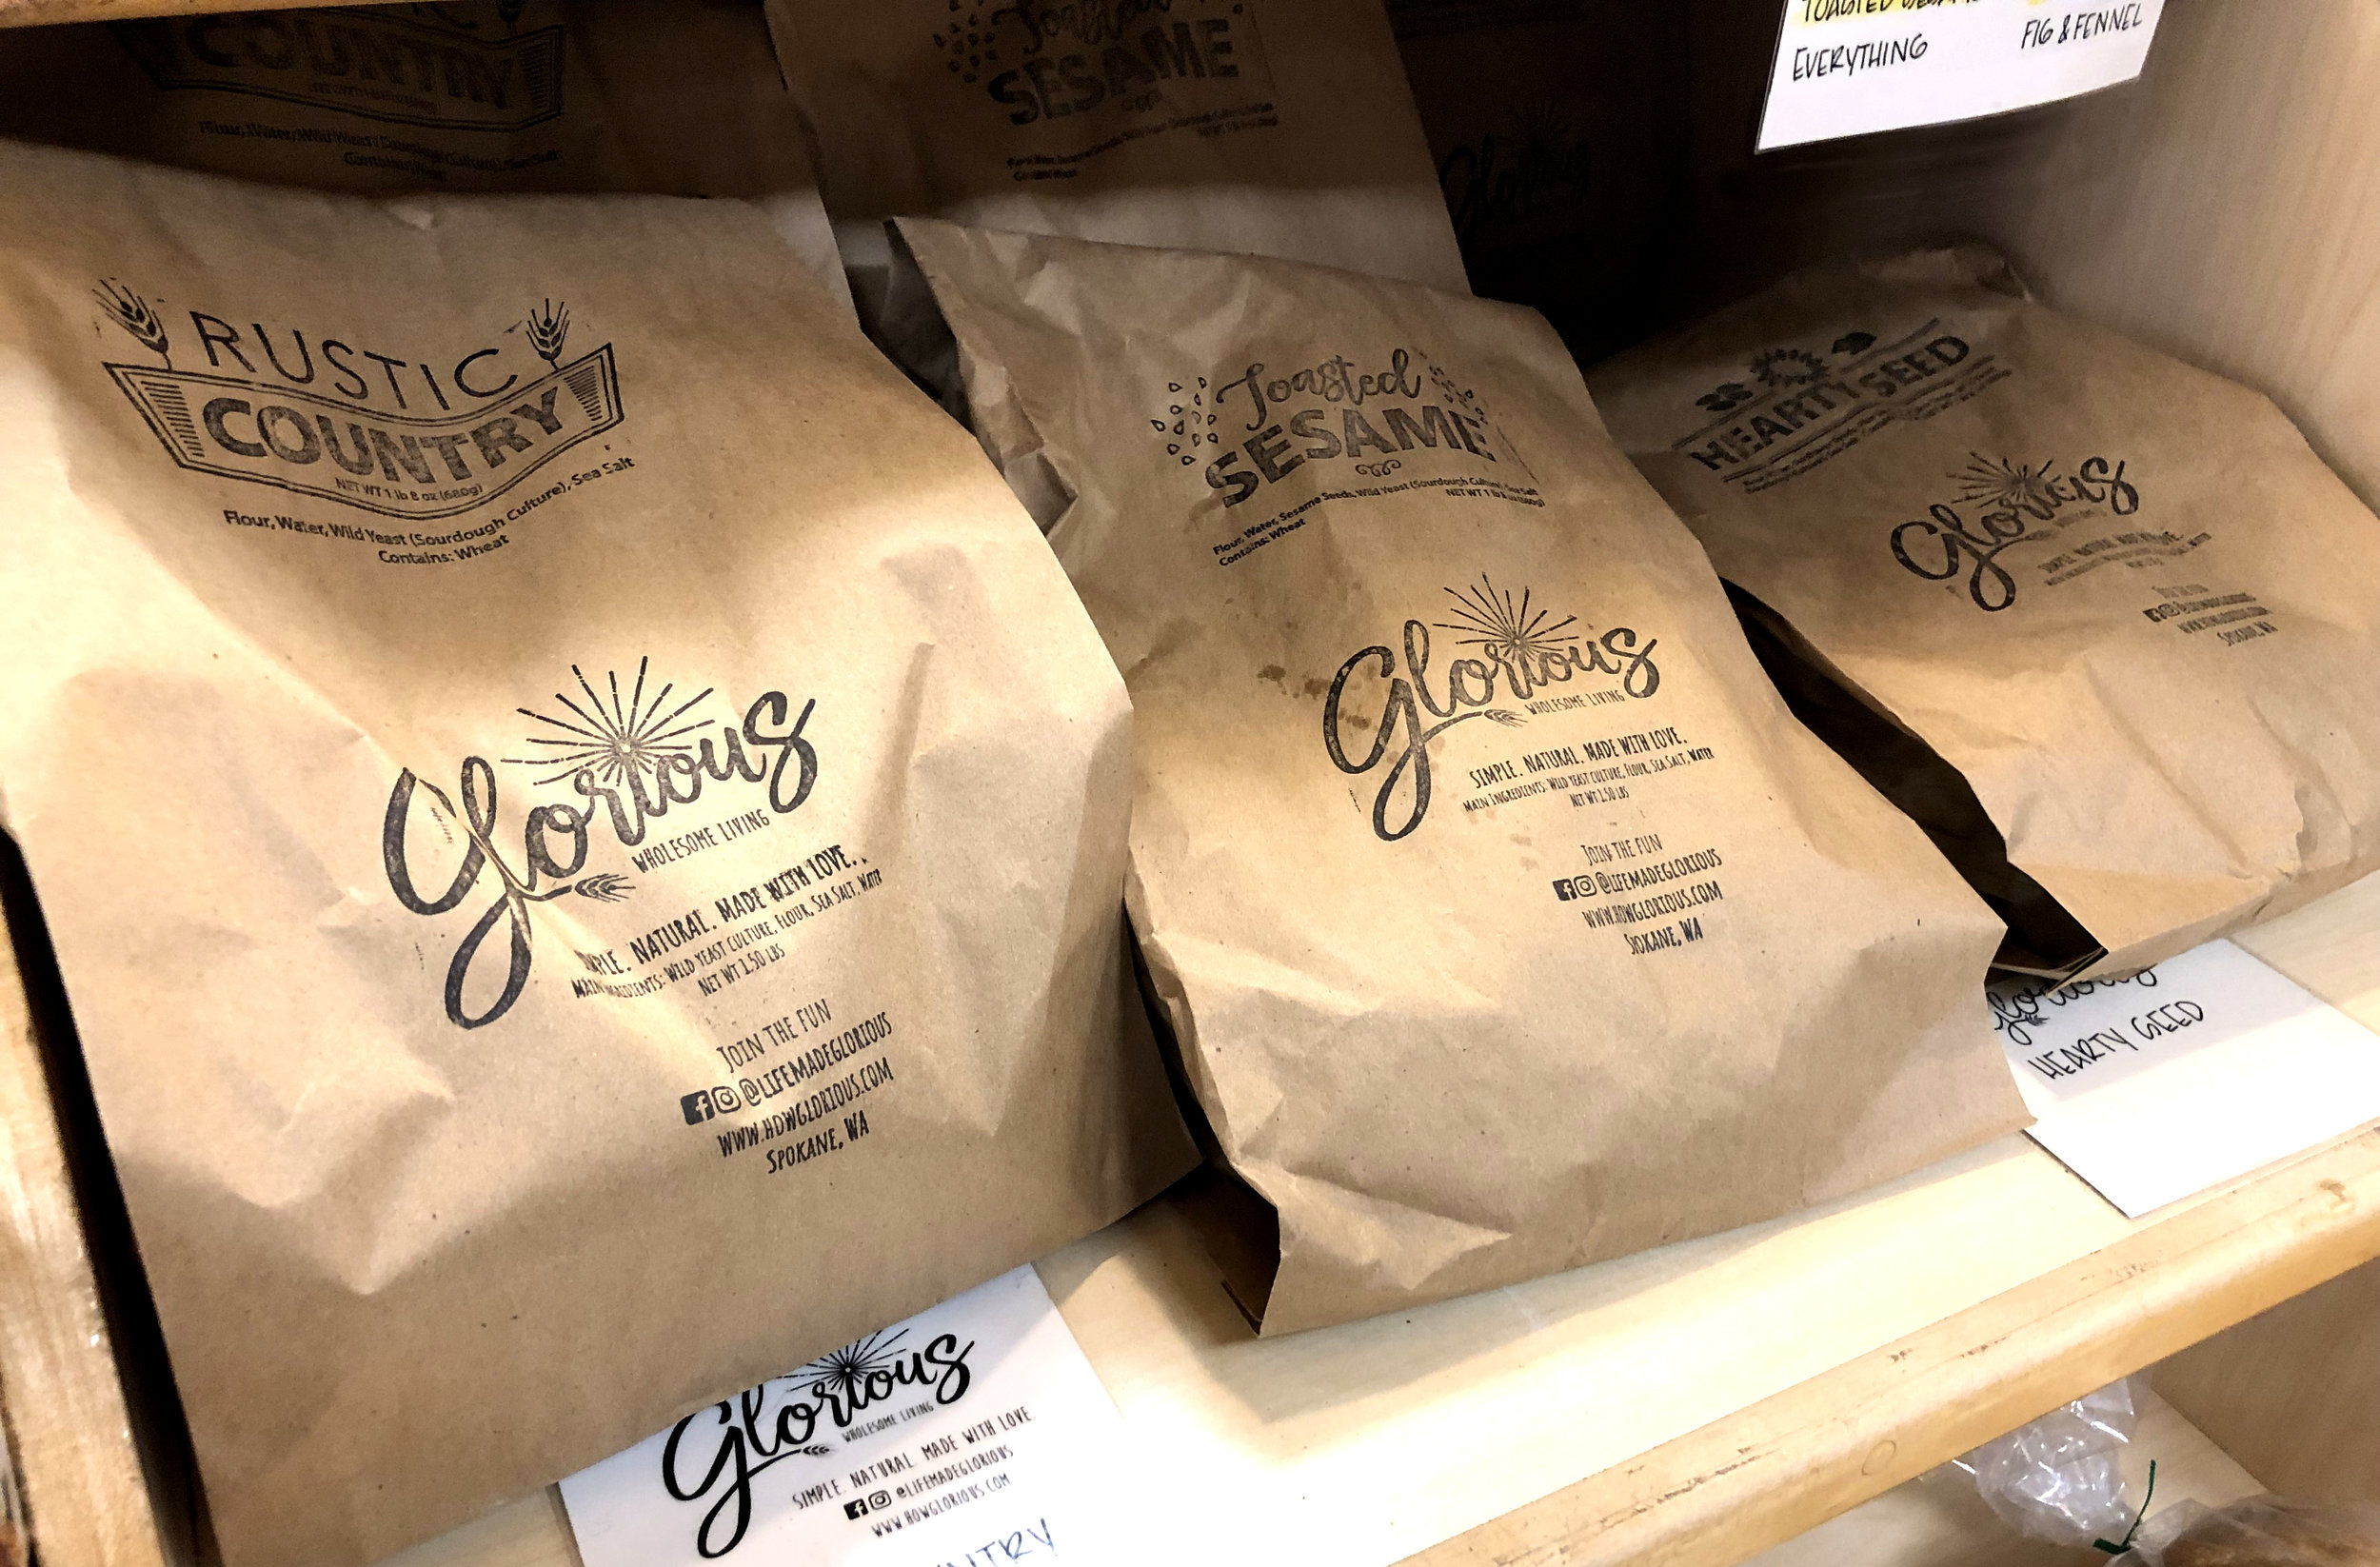 We package our loaves in natural wrappers that can be recycled. That's important to us.   We're proud to supply many of the top restaurants and coffee shops in town with their bread. We're grateful that these chefs and owners trust us to provide the best for their customers.